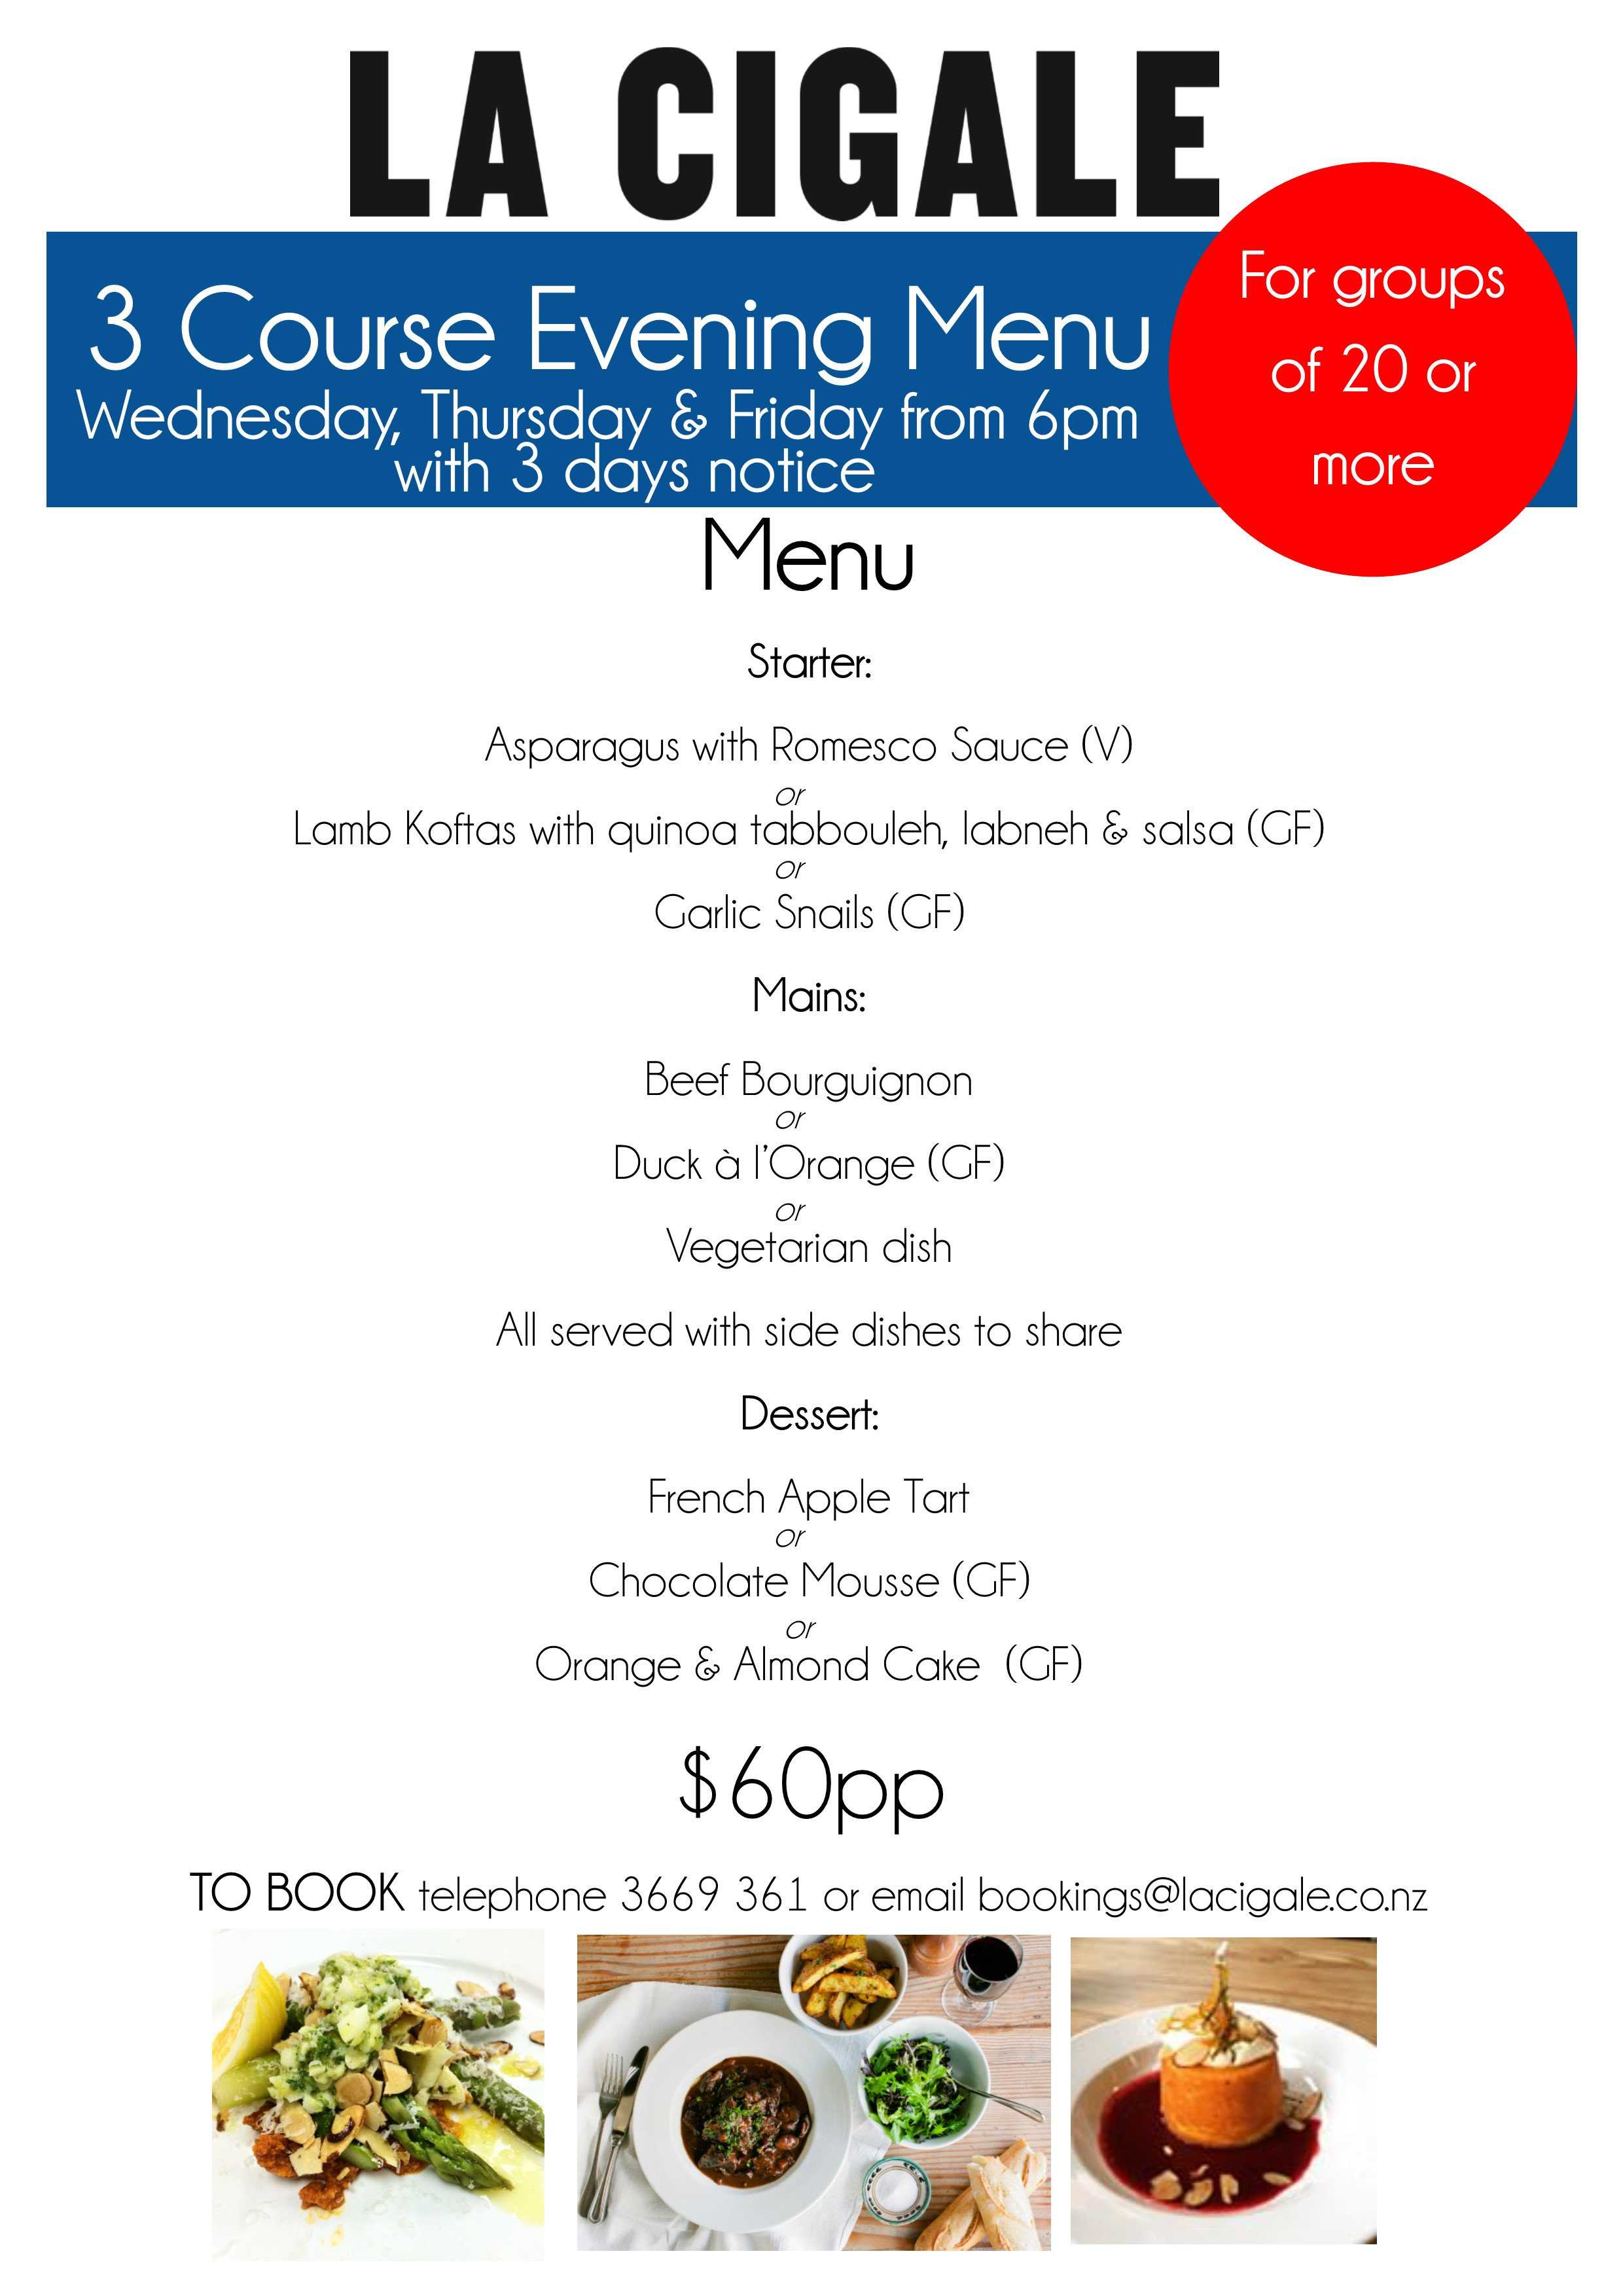 evening menu for groups 2015